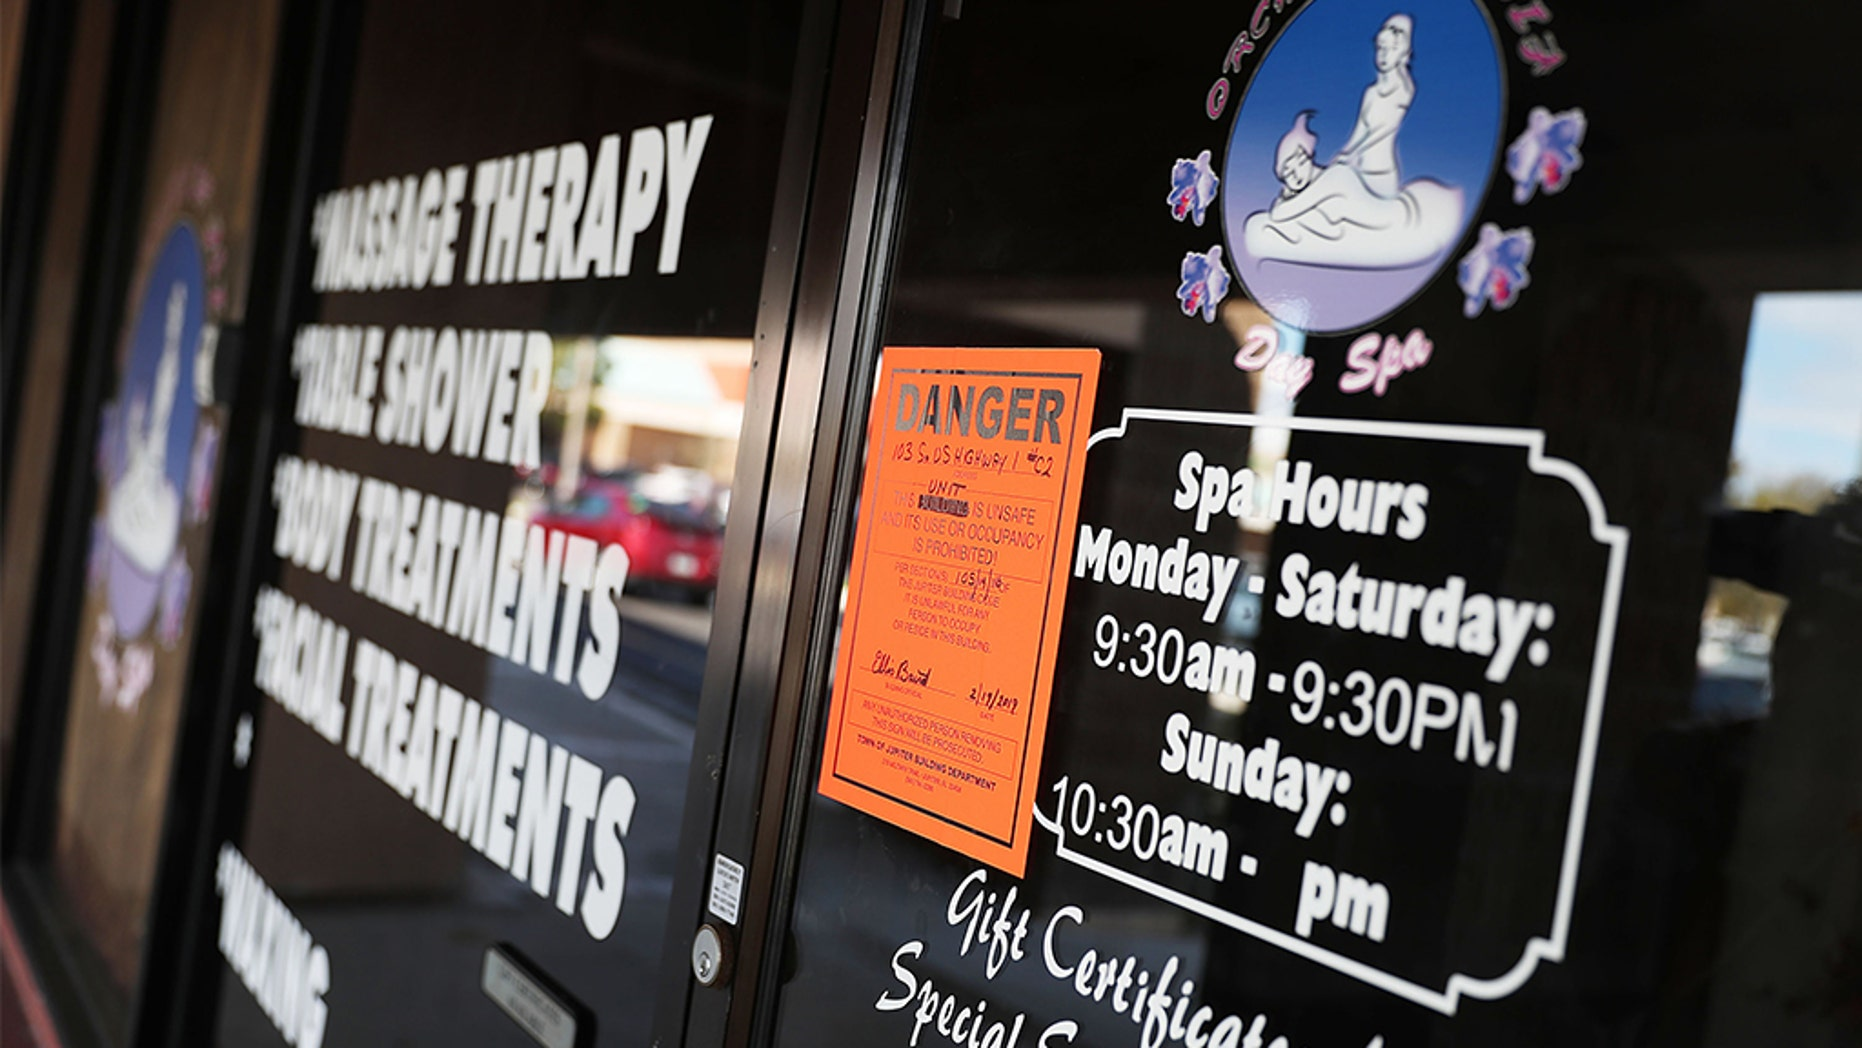 A Danger sign seen on the front door of the Orchids of Asia Day Spa last week in Jupiter, Fla., in connection to New England Patriots owner Robert Kraft being charged with allegedly soliciting for sex. (Photo by Joe Raedle/Getty Images)